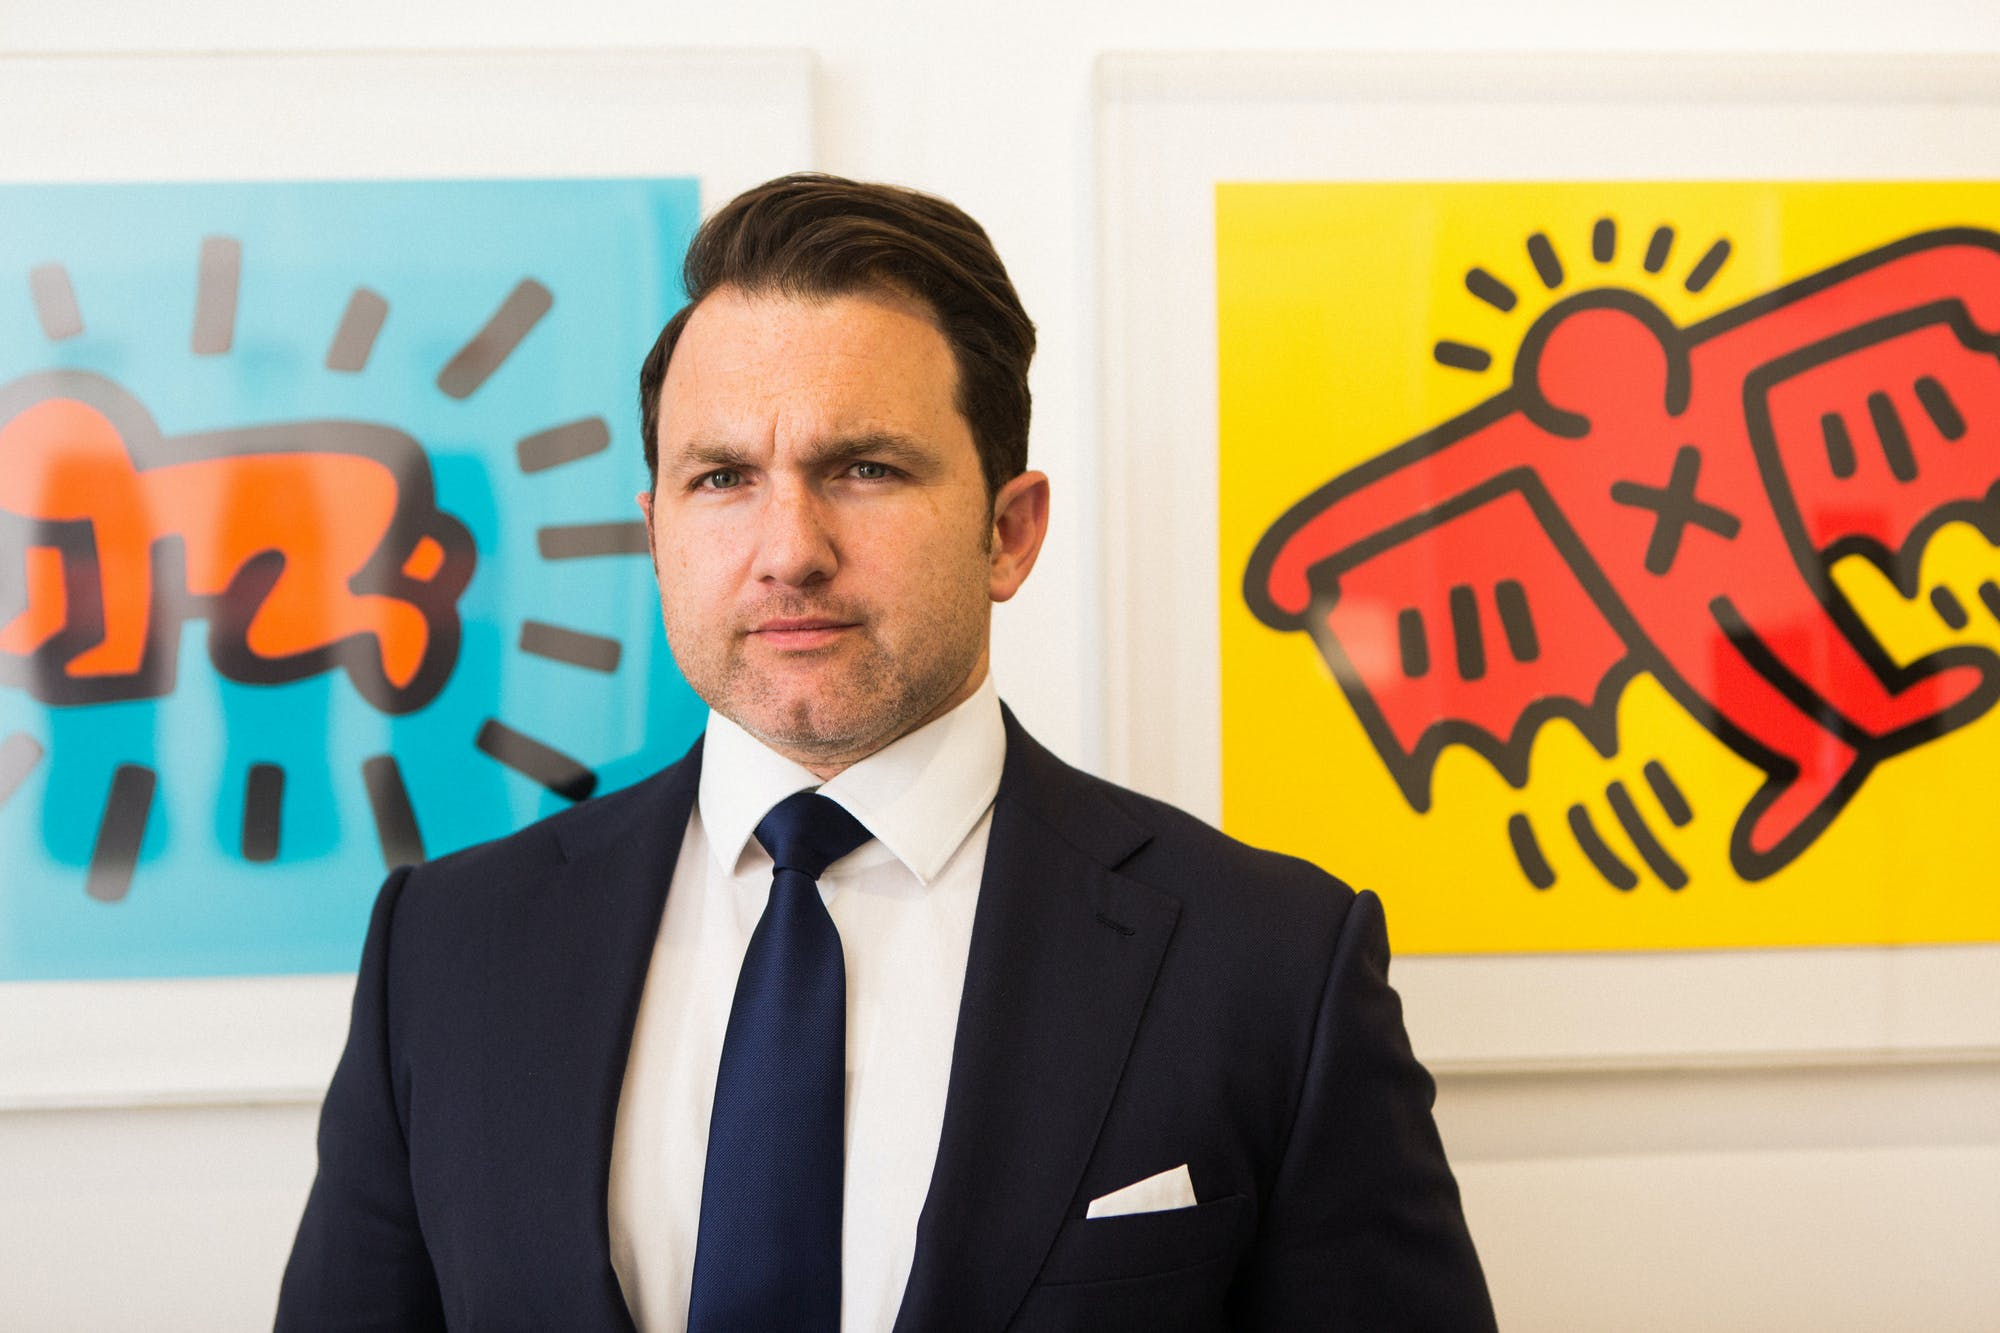 Welcome to Walpole An interview with Maddox Gallery CEO, John Russo